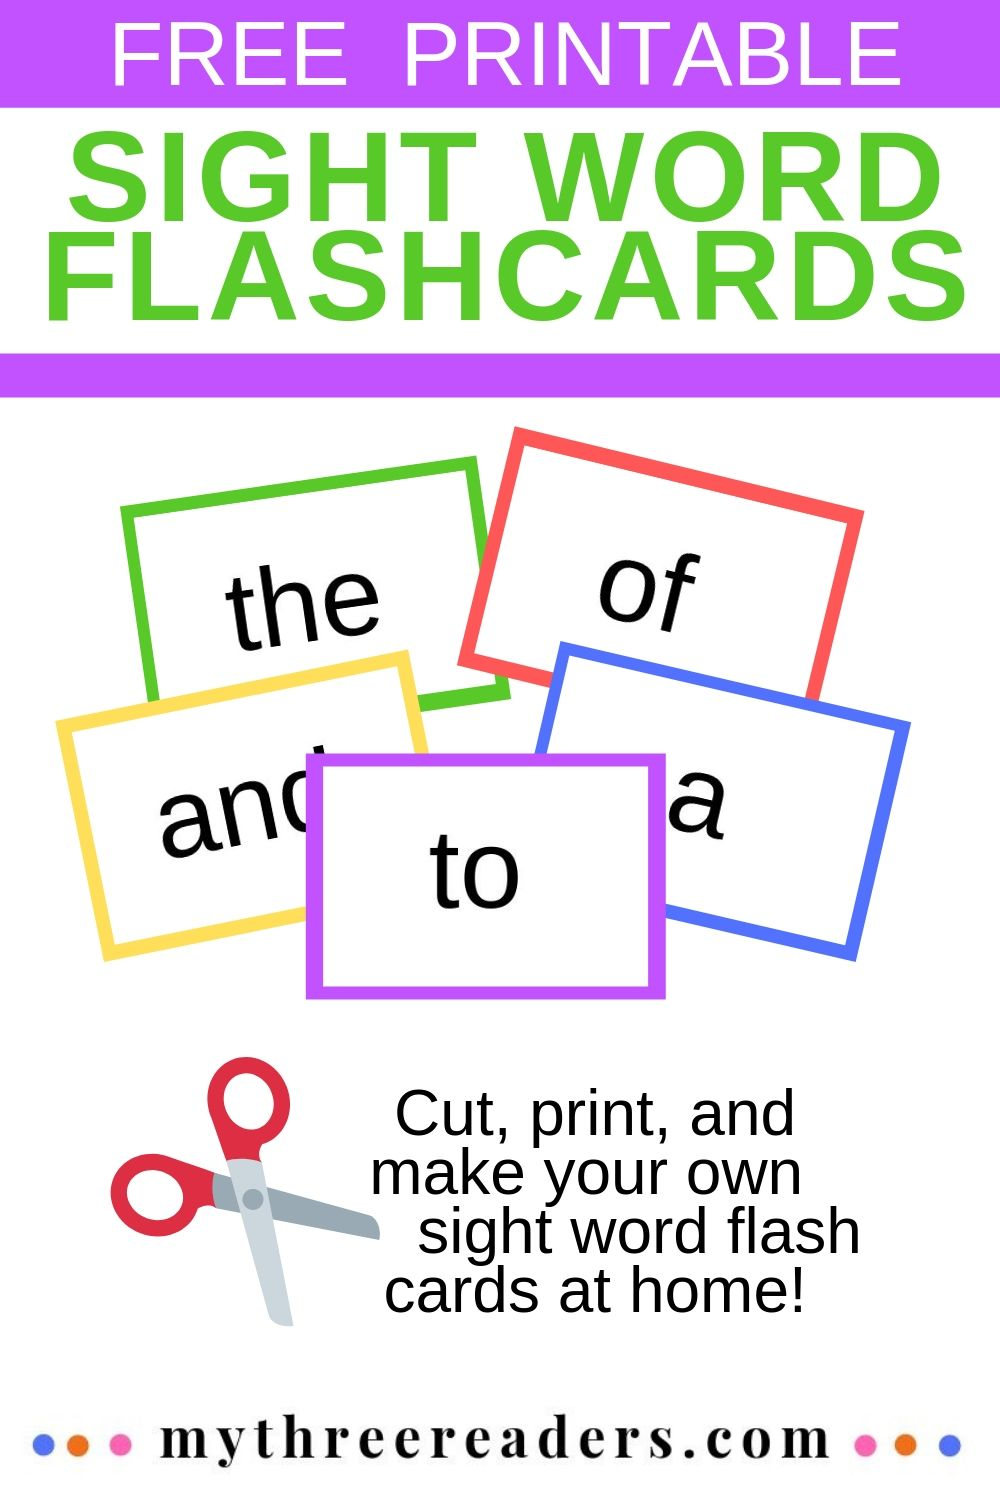 photo relating to Printable Sight Word Cards referred to as Deliver Your Individual Sight Term Flash Playing cards - No cost, Printable for Oneself!